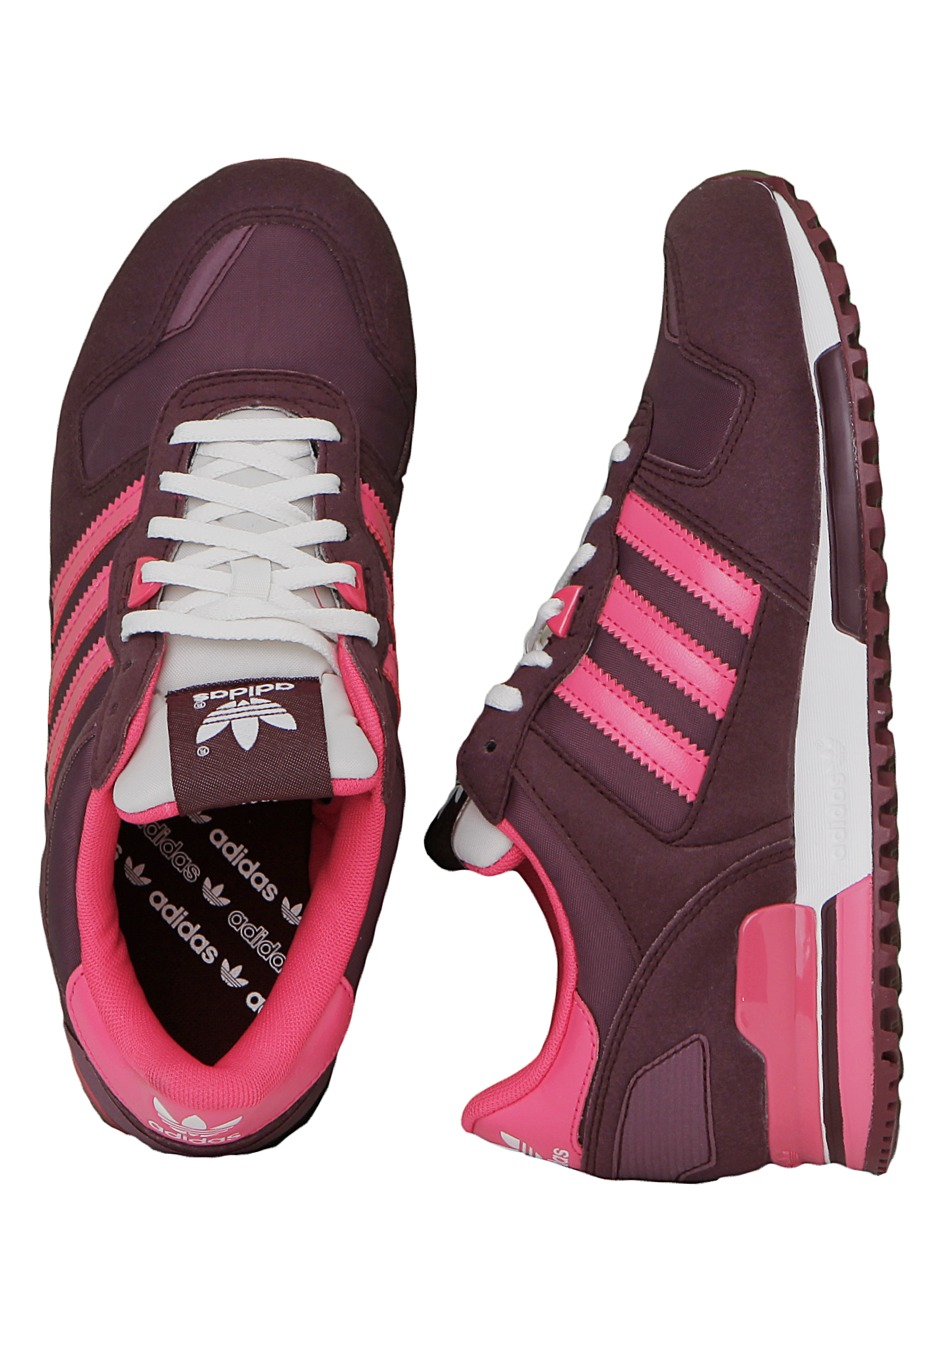 énorme réduction cc4a0 5daea Adidas - ZX 700 Light Maroon/White Vapour/Super Pink - Girl Shoes